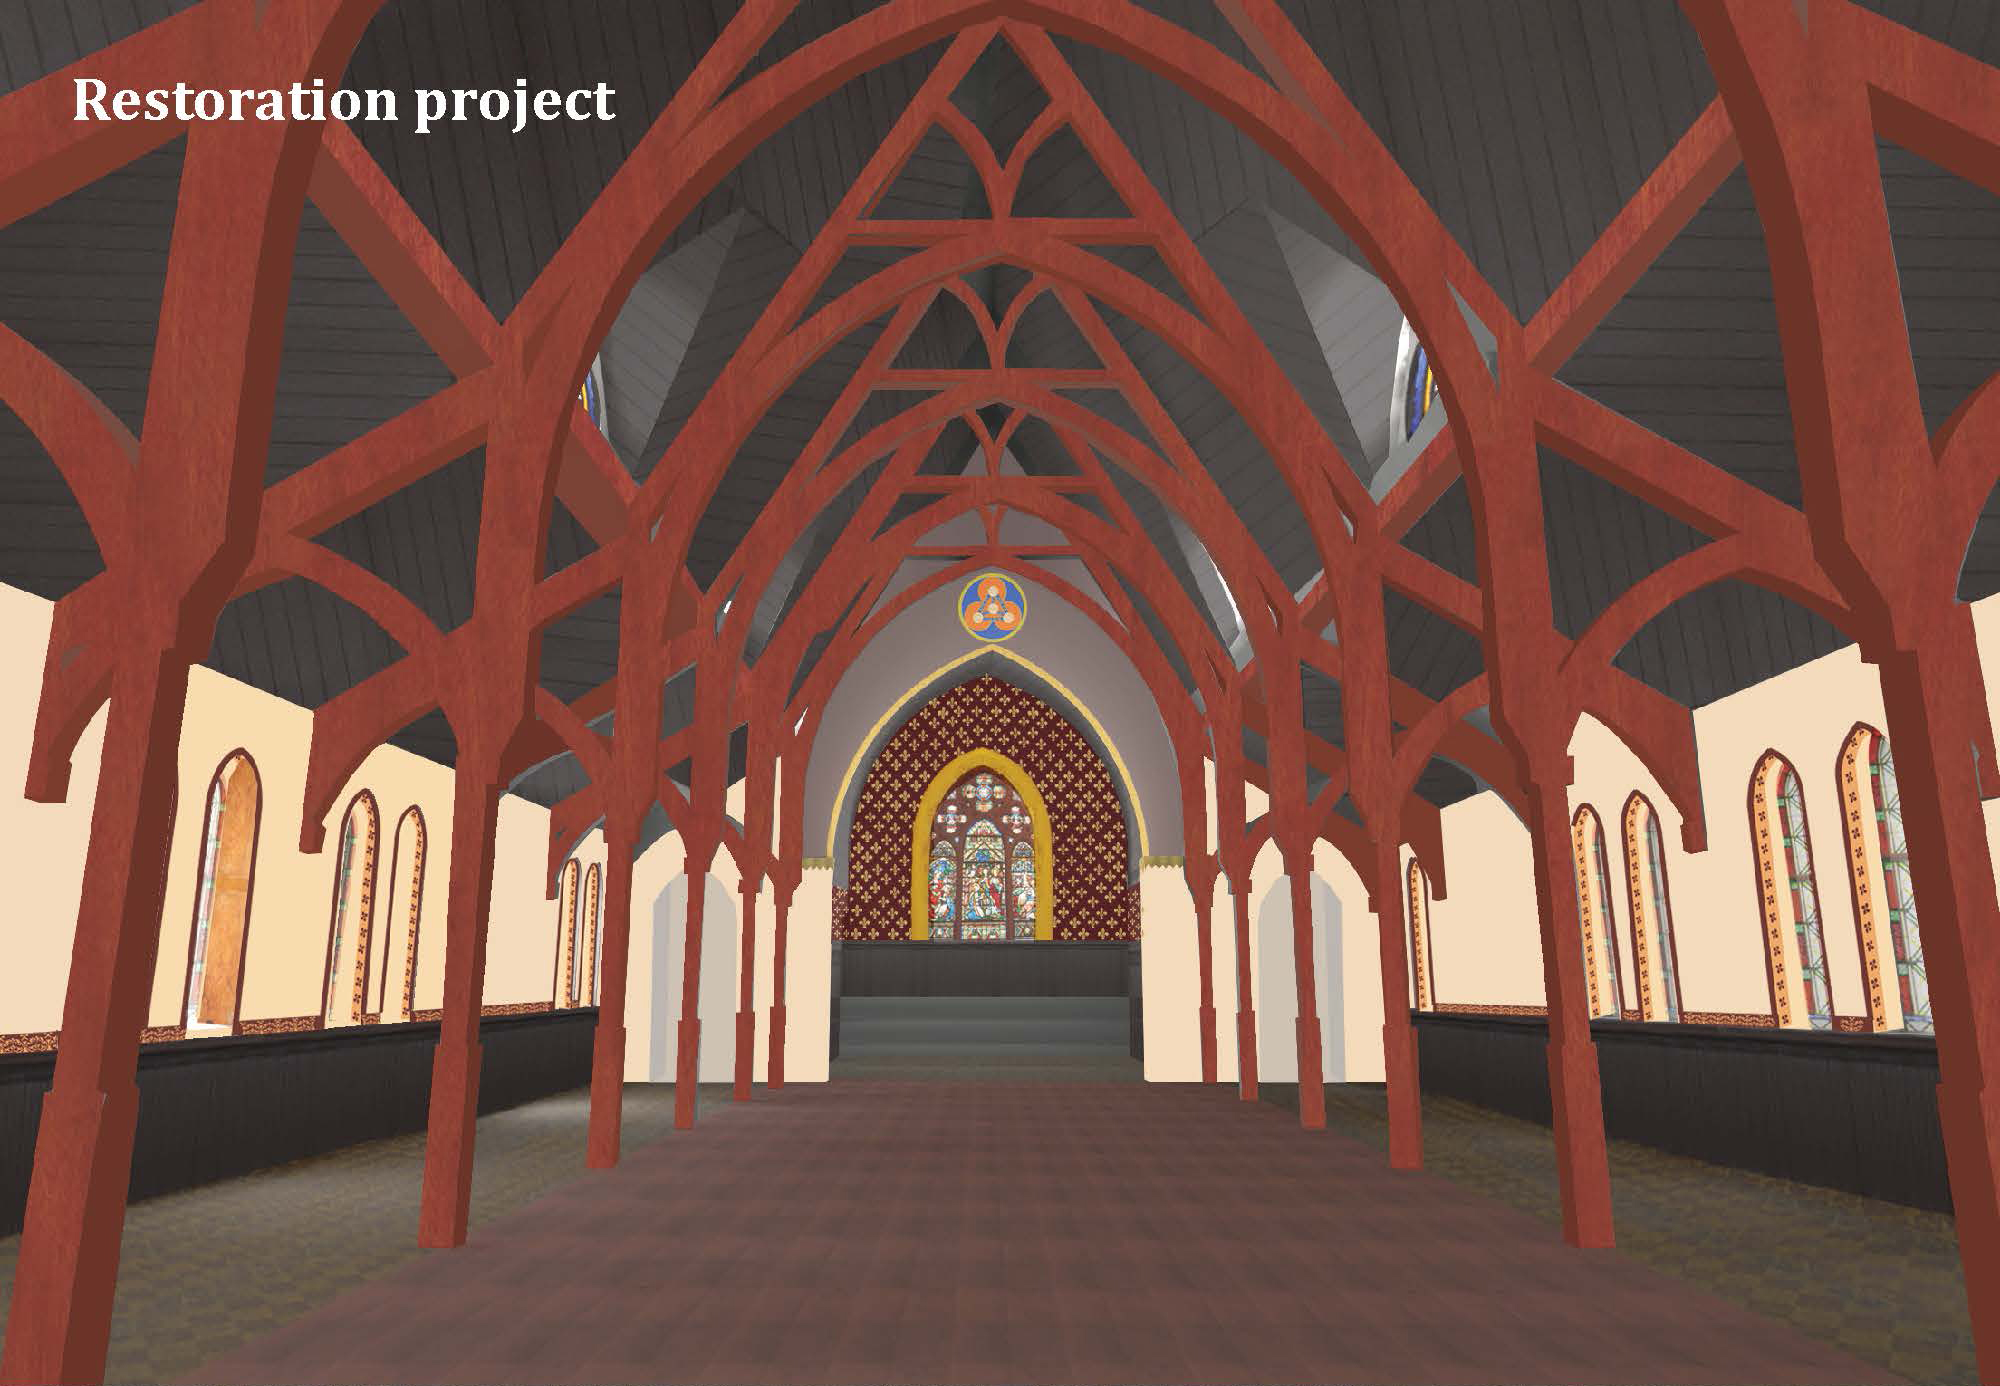 Rendering of restored interior, 19th Street Baptist Church | PennDesign, Graduate Program in Historic Preservation